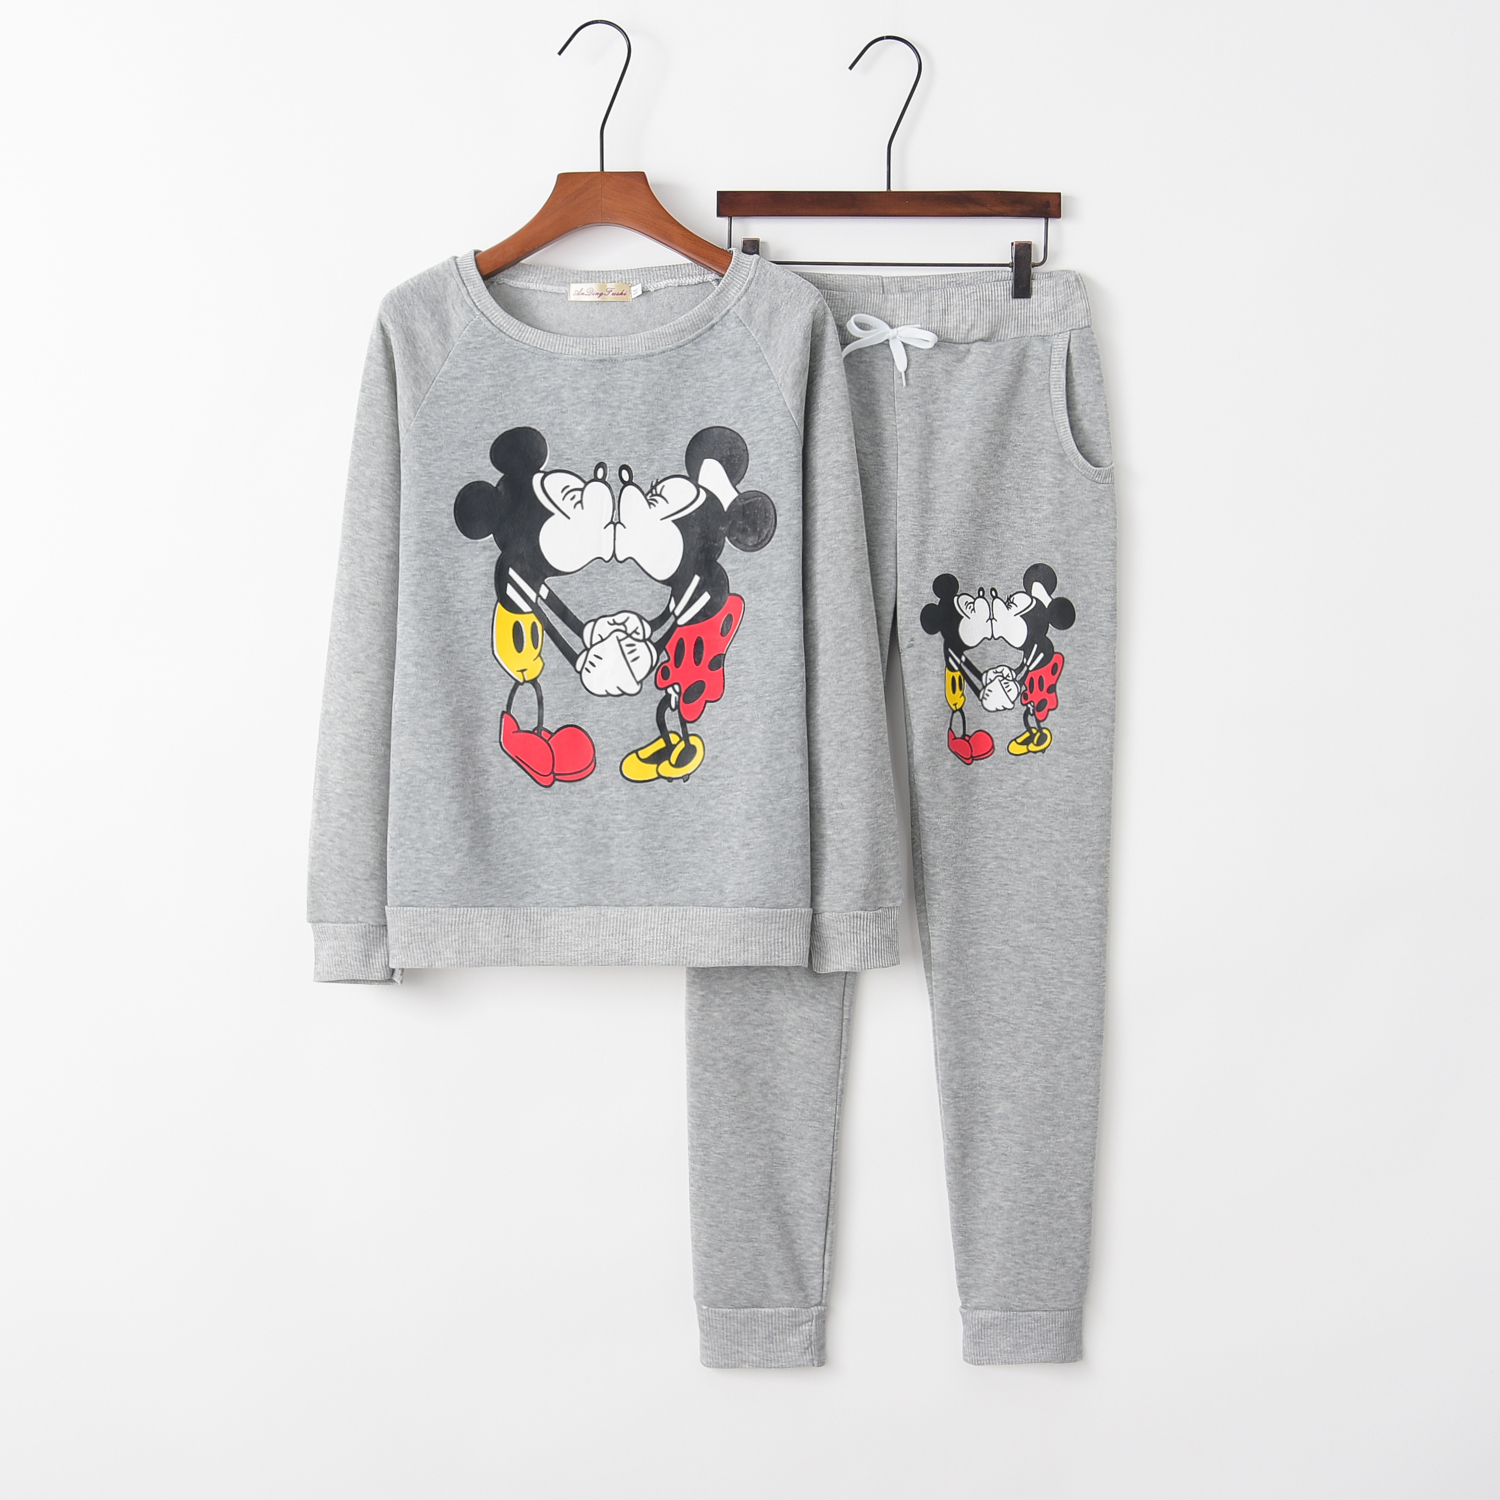 2018 Mickey Women's Tracksuit For Women 2pieces Set Suit Kawaii Style Brand Sweatshirt+Pants